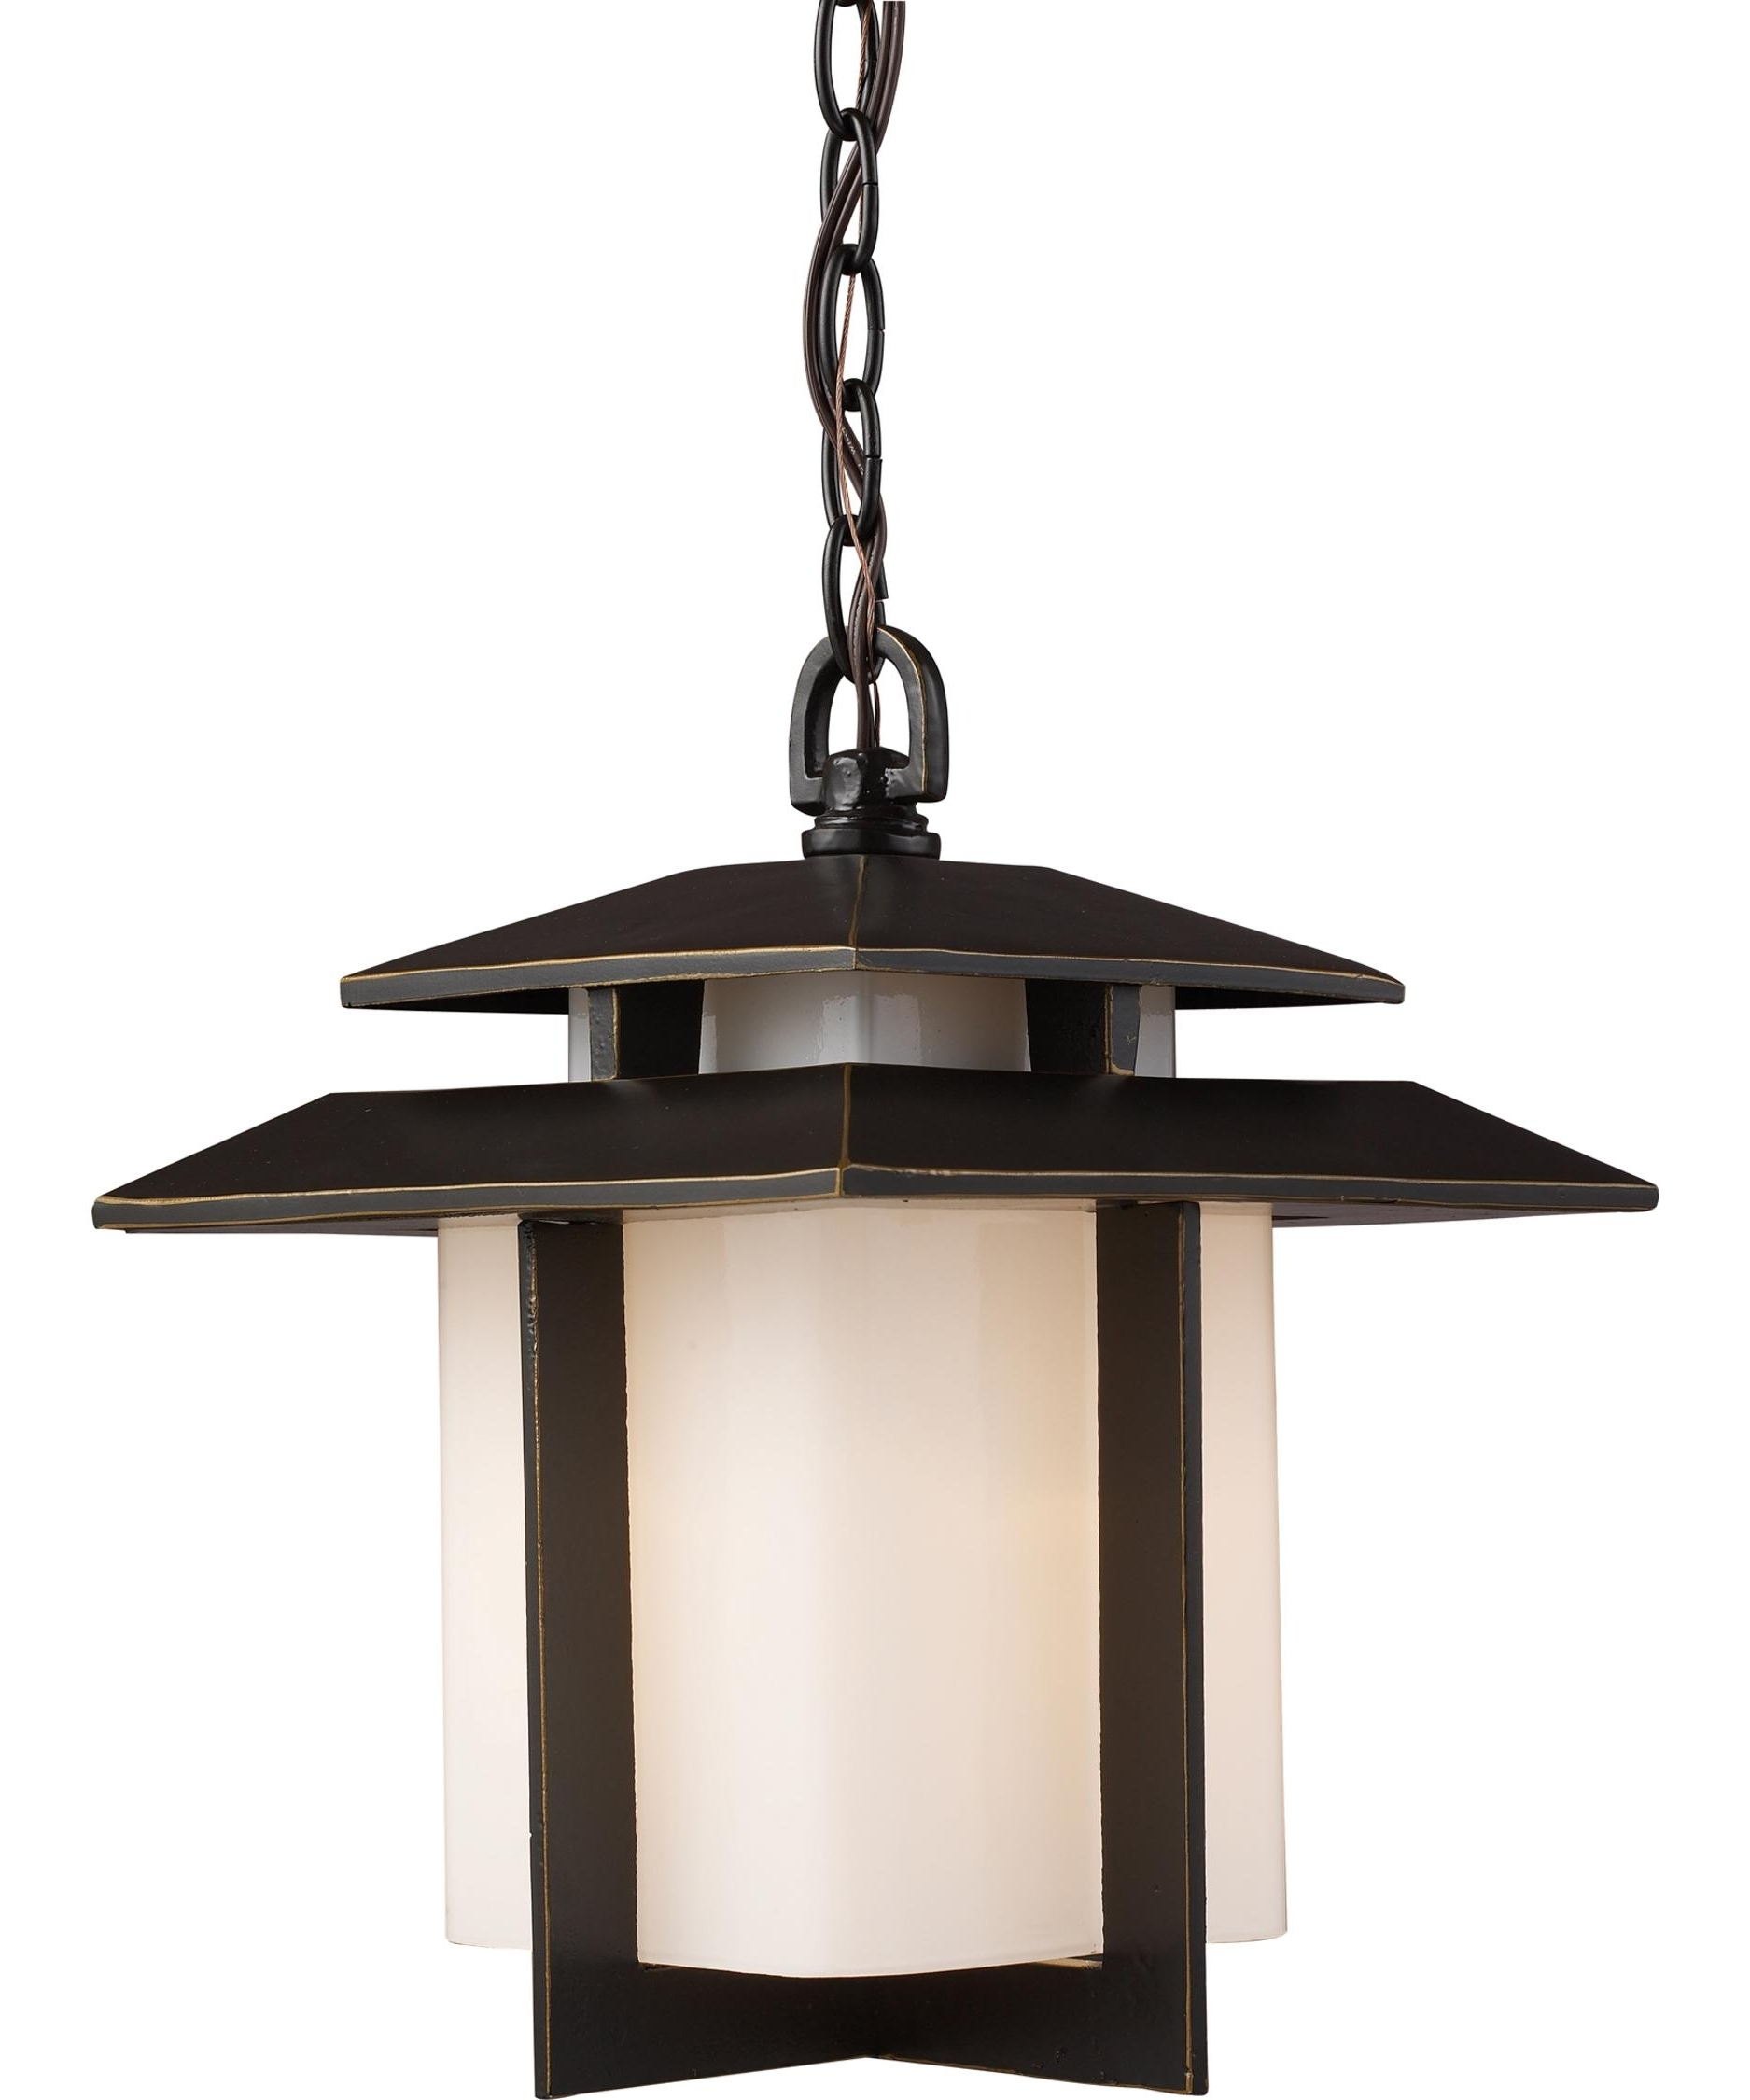 Most Popular Garden Porch Light Fixtures At Home Depot Inside Light : Outdoor Lighting Ideas Without Electricity Exterior Fixtures (View 12 of 20)